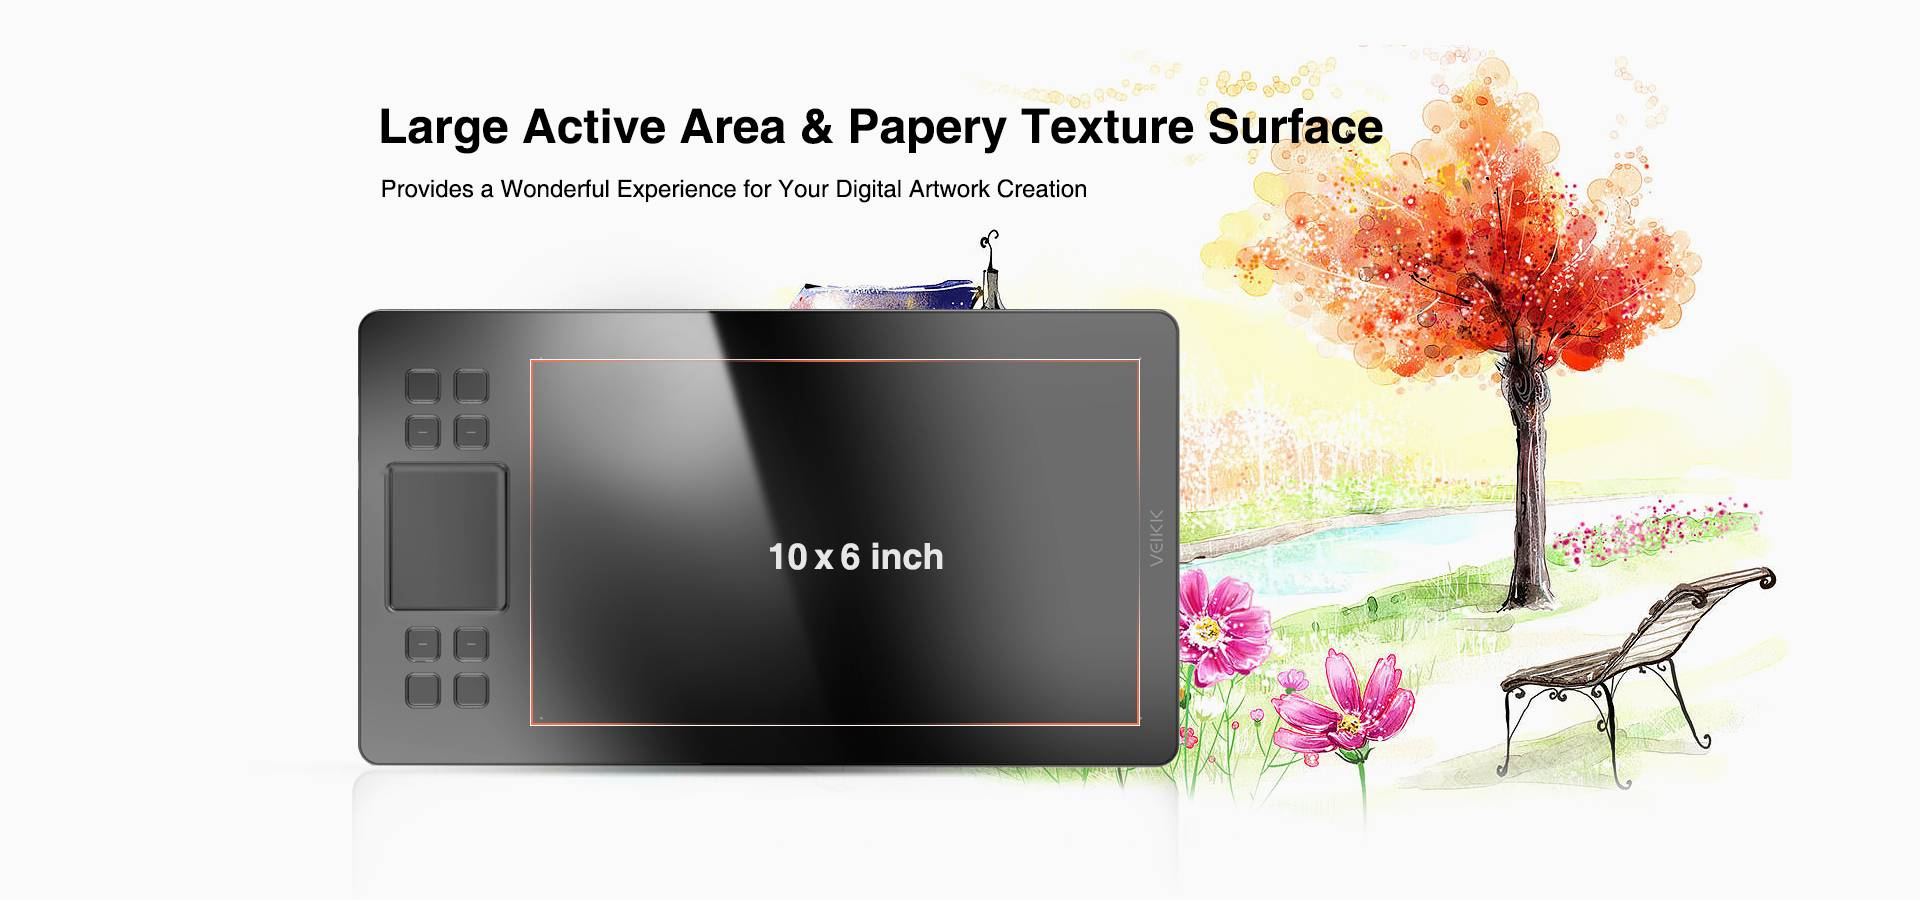 10x6 Inch Active Area